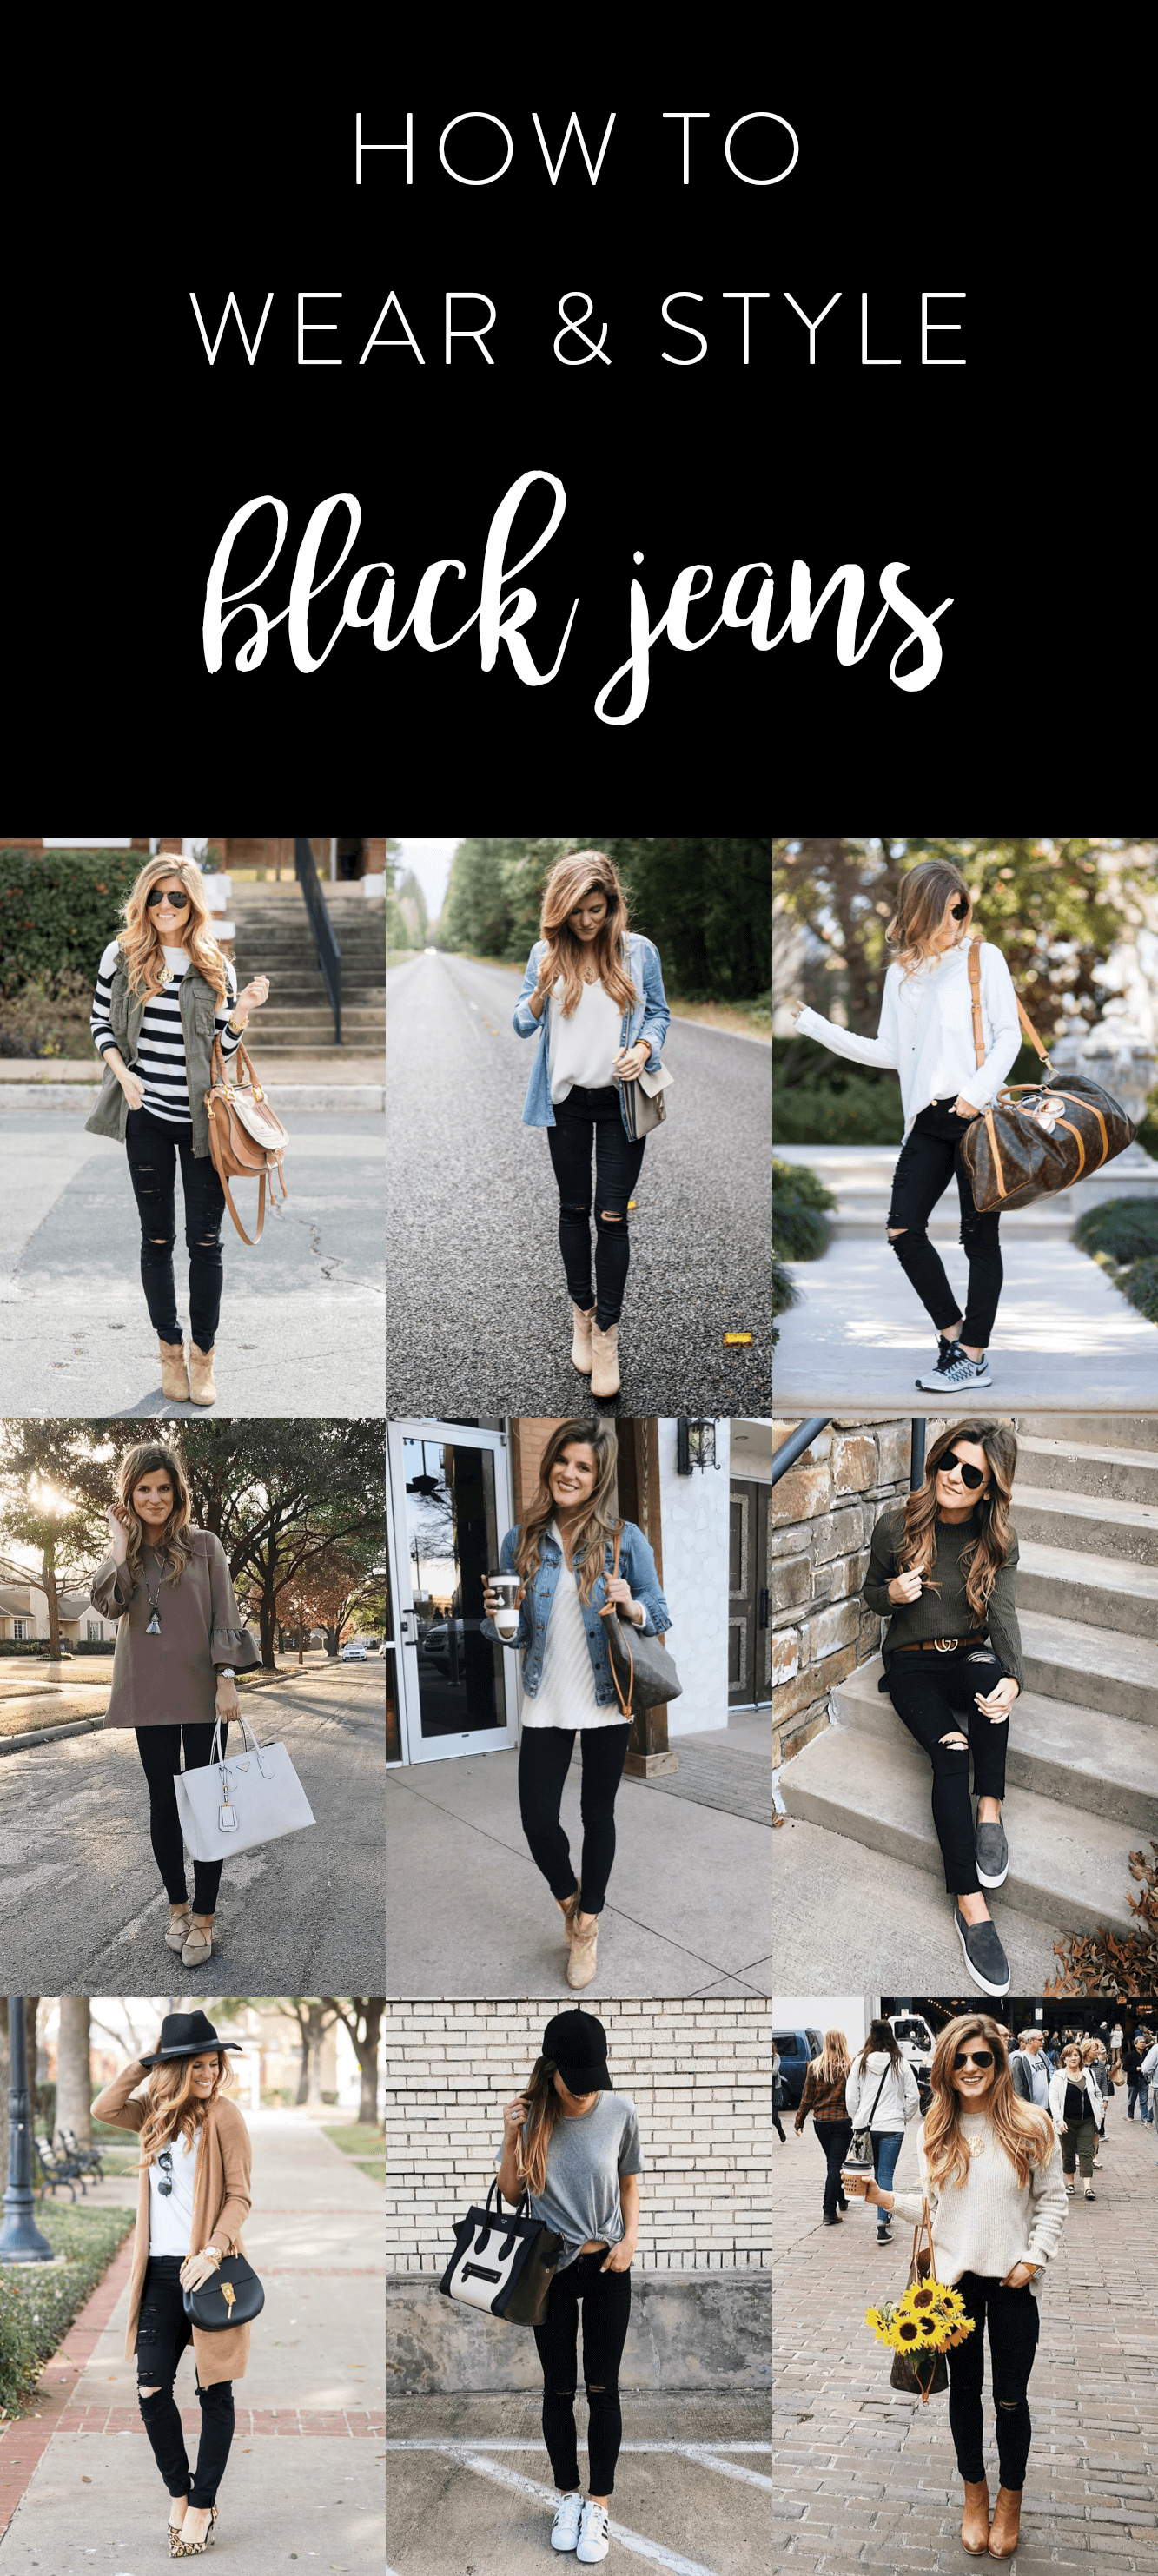 What to wear with black jeans - 26+ Black Jeans Outfit Ideas (mit